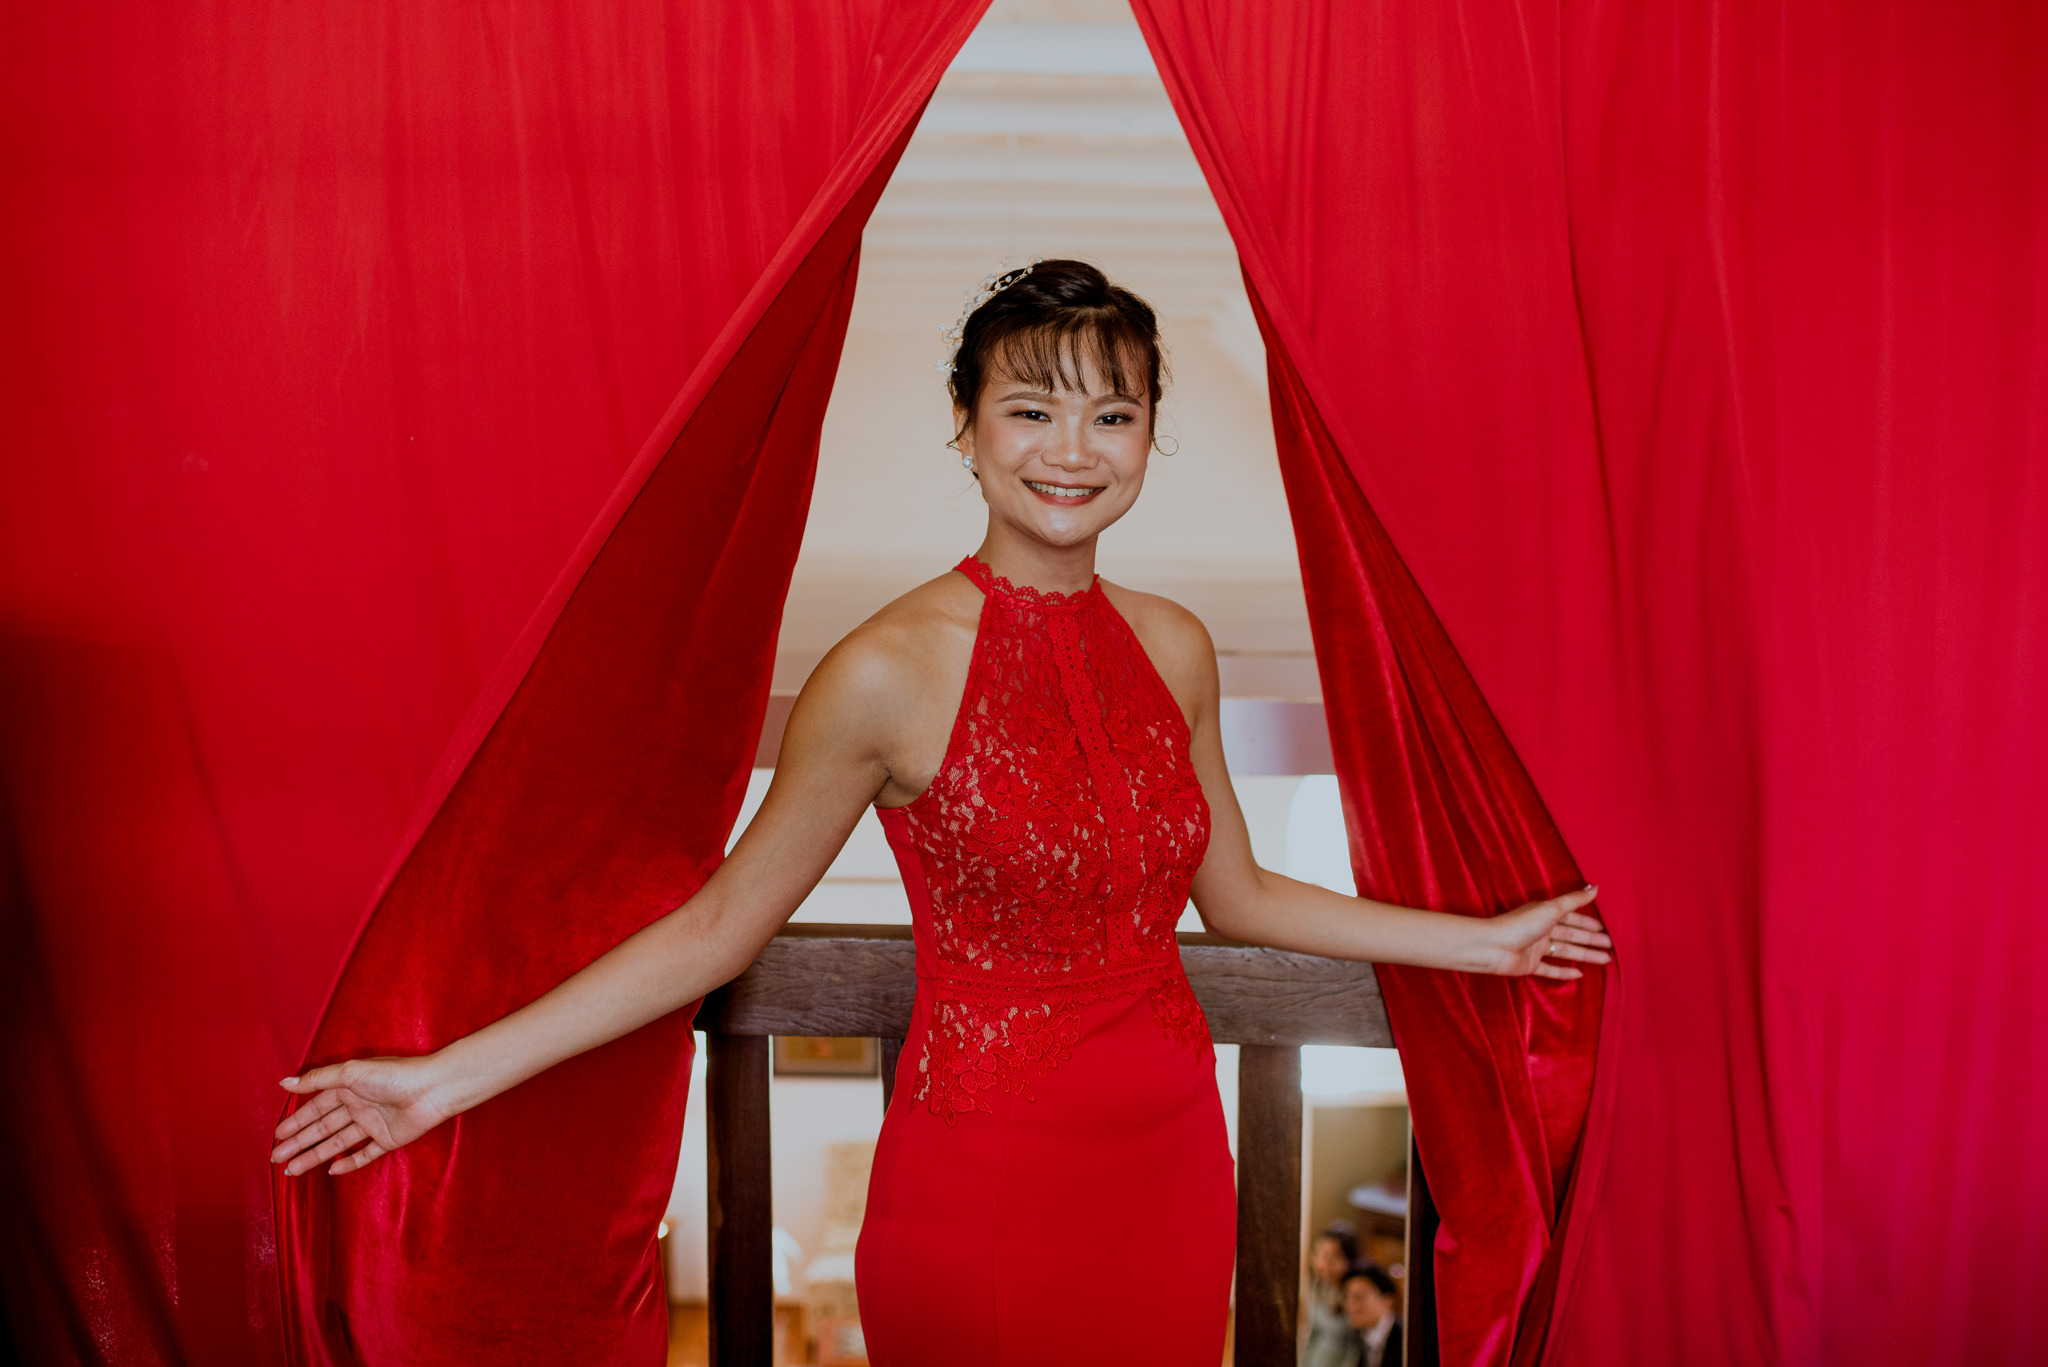 An asian woman in a red dress flings open a red curtain